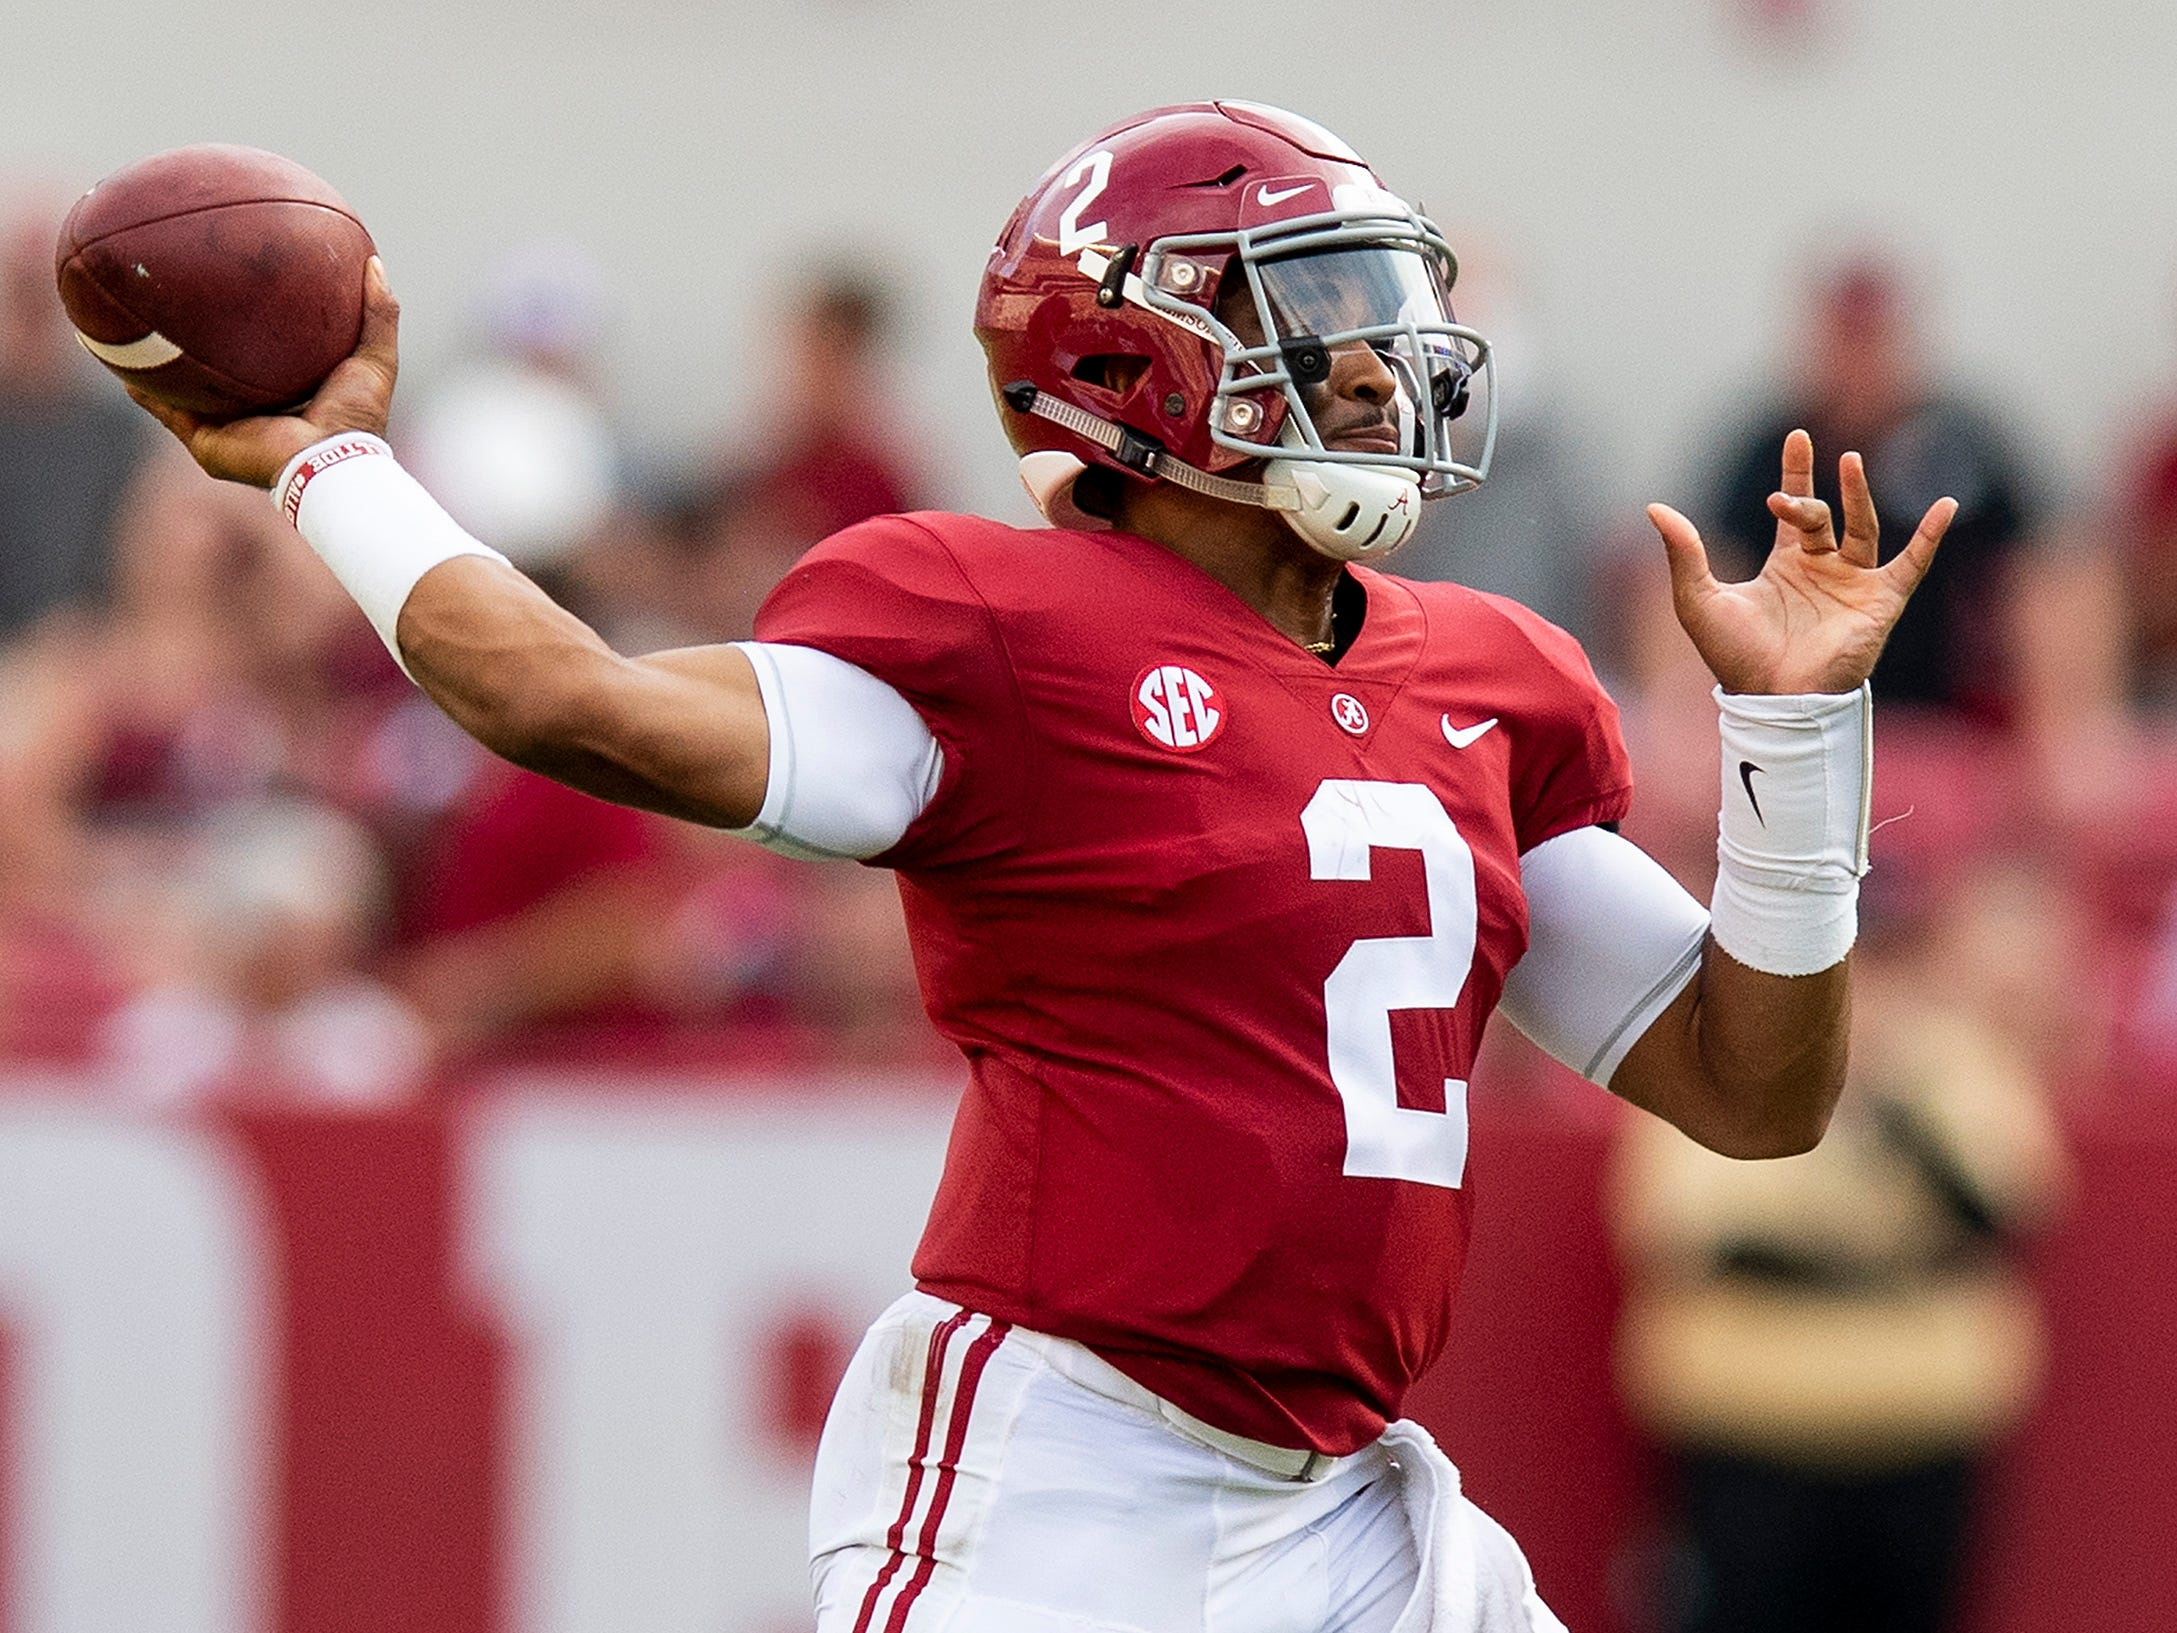 Alabama quarterback Jalen Hurts (2) throws in second half action against Arkansas State at Bryant Denny Stadium in Tuscaloosa, Ala., on Saturday September 8, 2018.